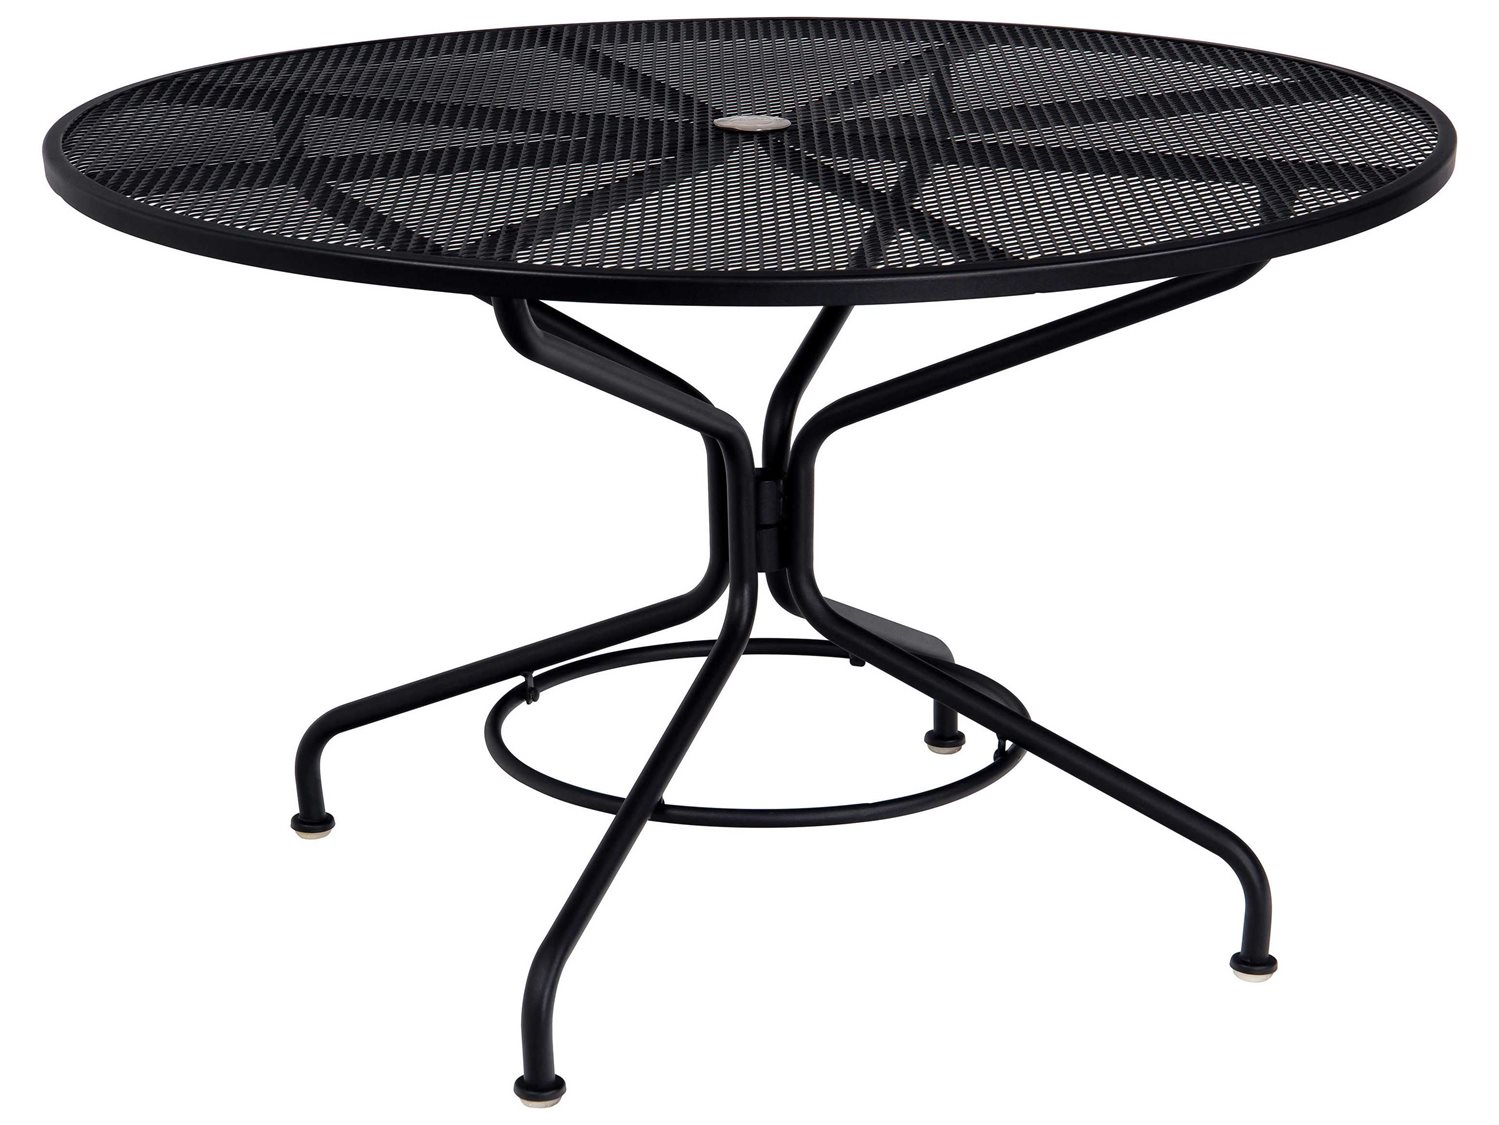 woodard mesh wrought iron 48 round table with umbrella hole in mercury finish. Black Bedroom Furniture Sets. Home Design Ideas